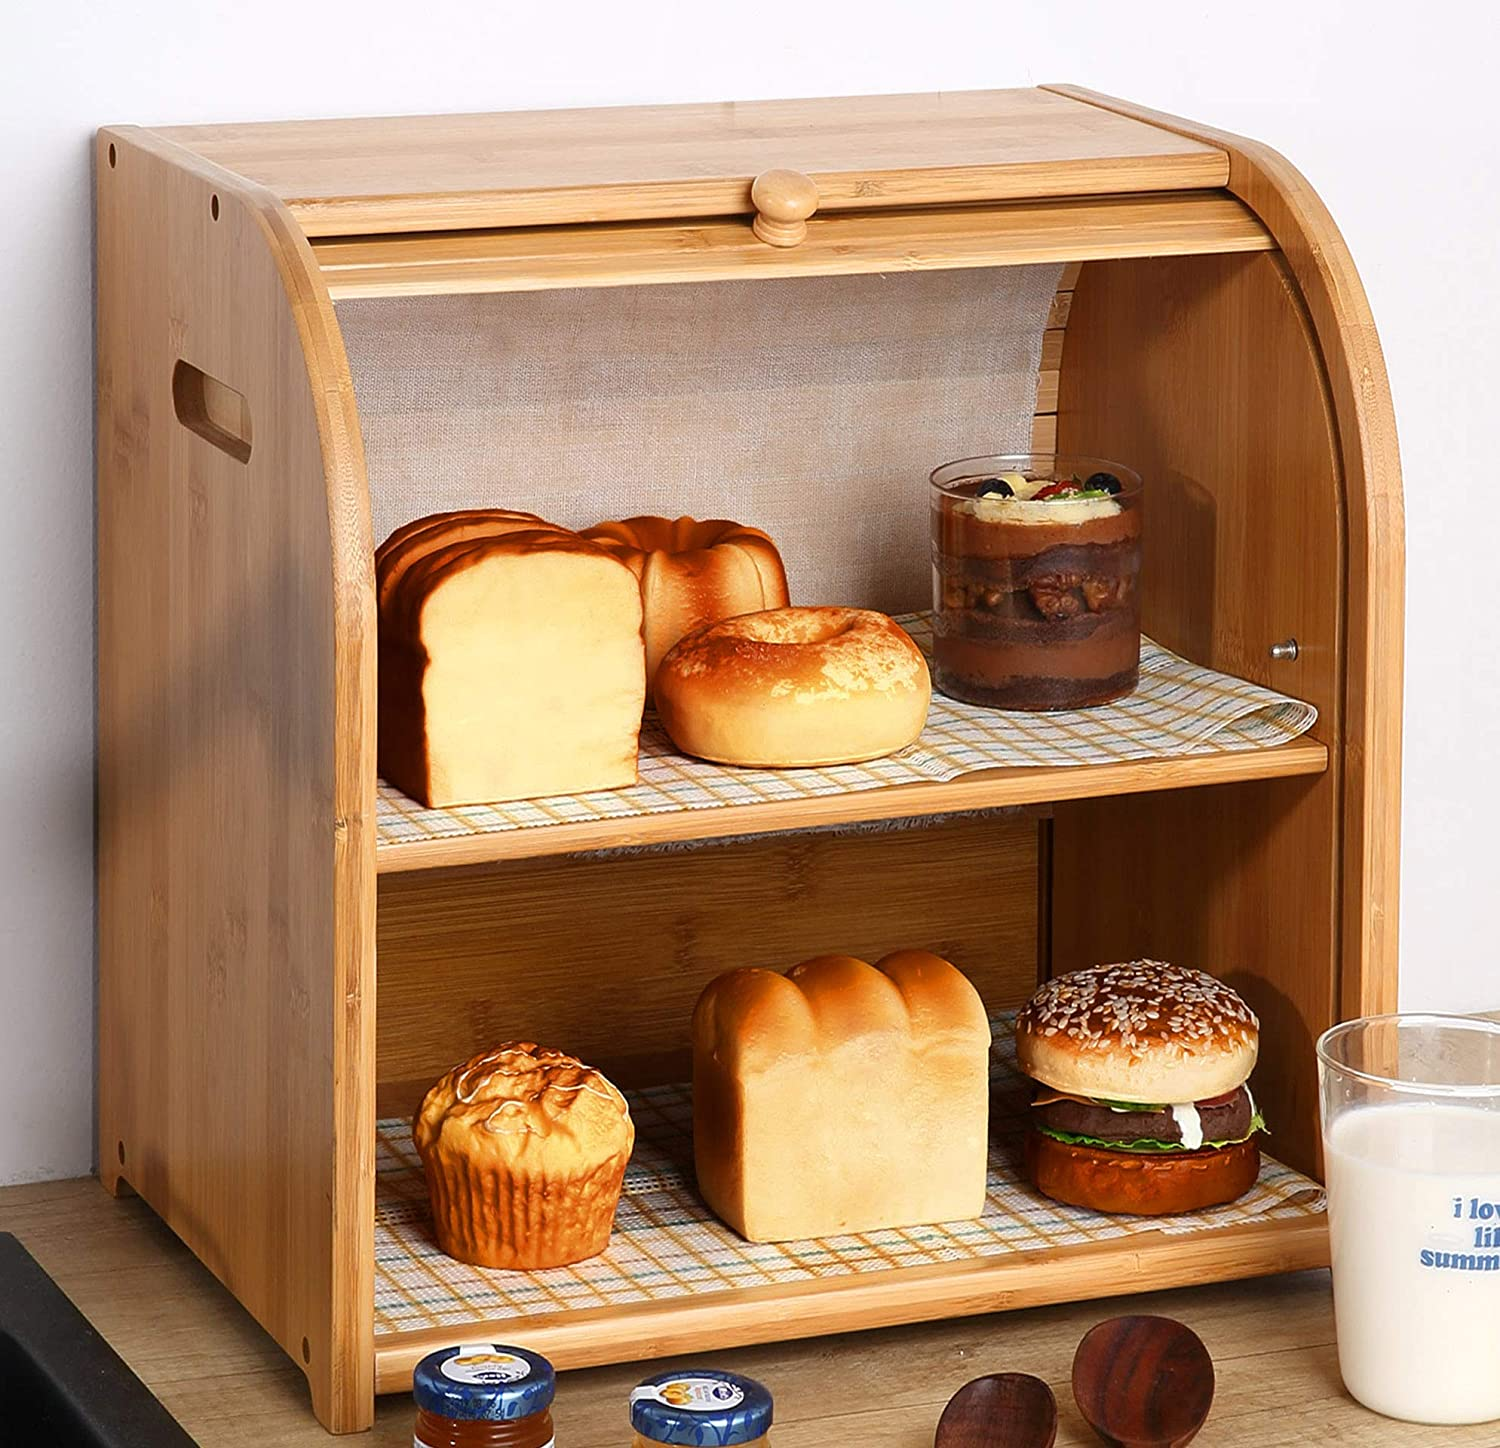 Bamboo 2 tier Bread Box- Kitchen Food Storage Bin display Countertop Shelf, Space Saving Bread Keeper with Adjustable Shelf, Wooden Large Capacity Holder Easy Assembled(Natural)